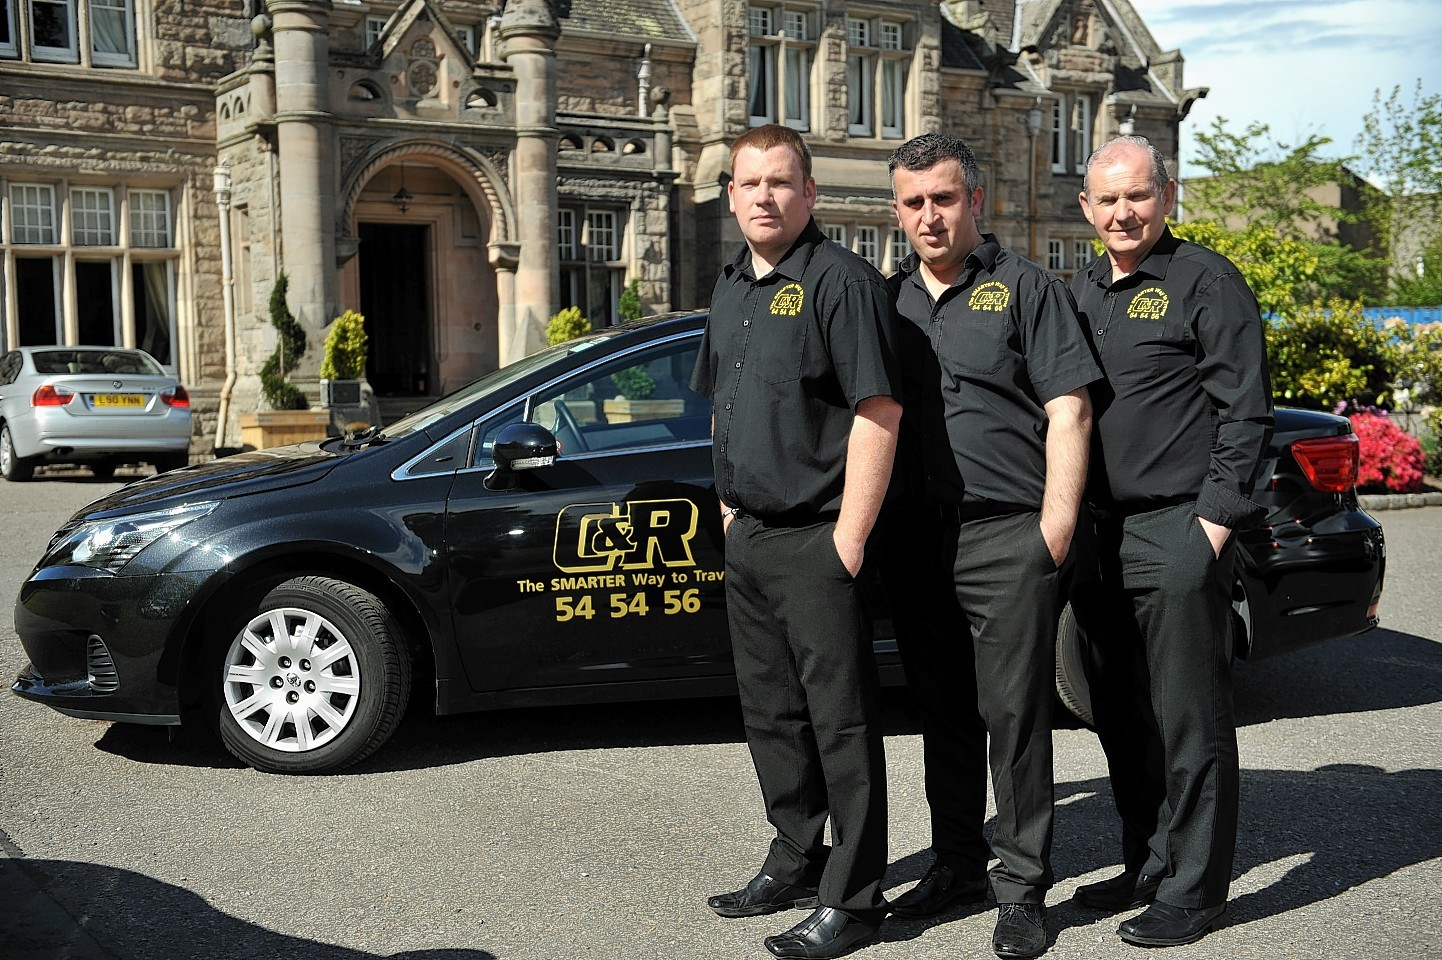 C&R Taxi drivers of Elgin, in their uniforms.